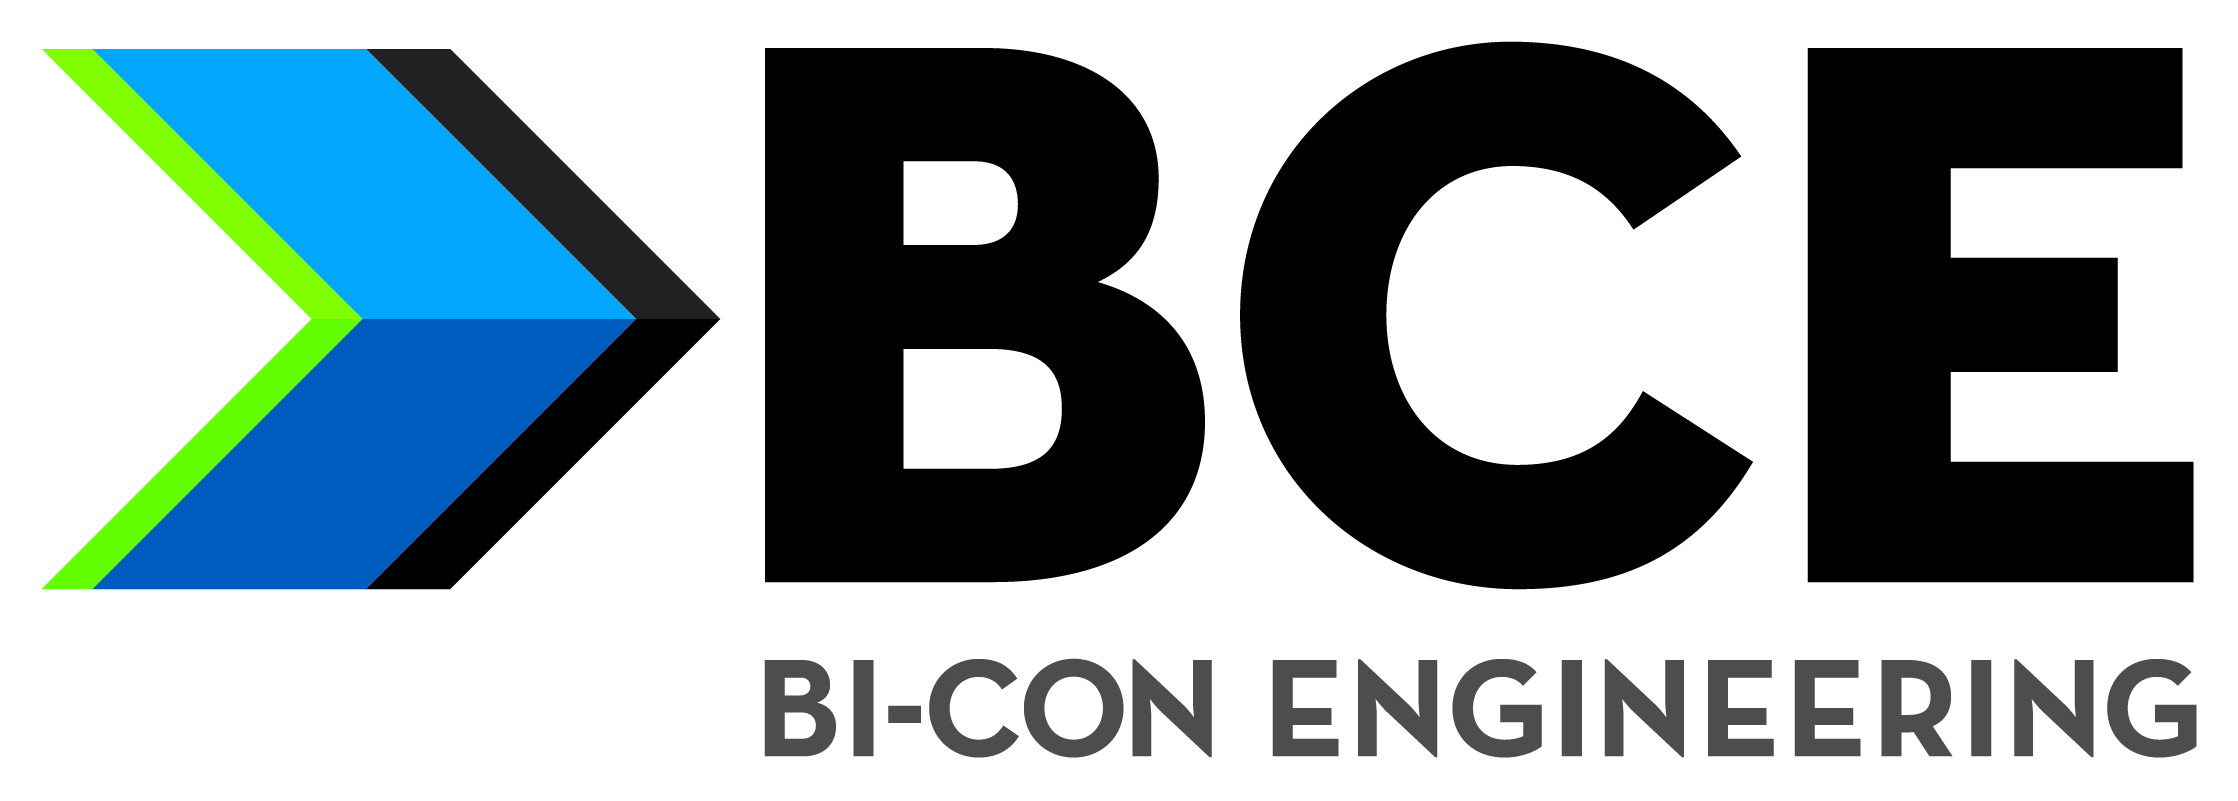 Bi-Con Engineering, LLC